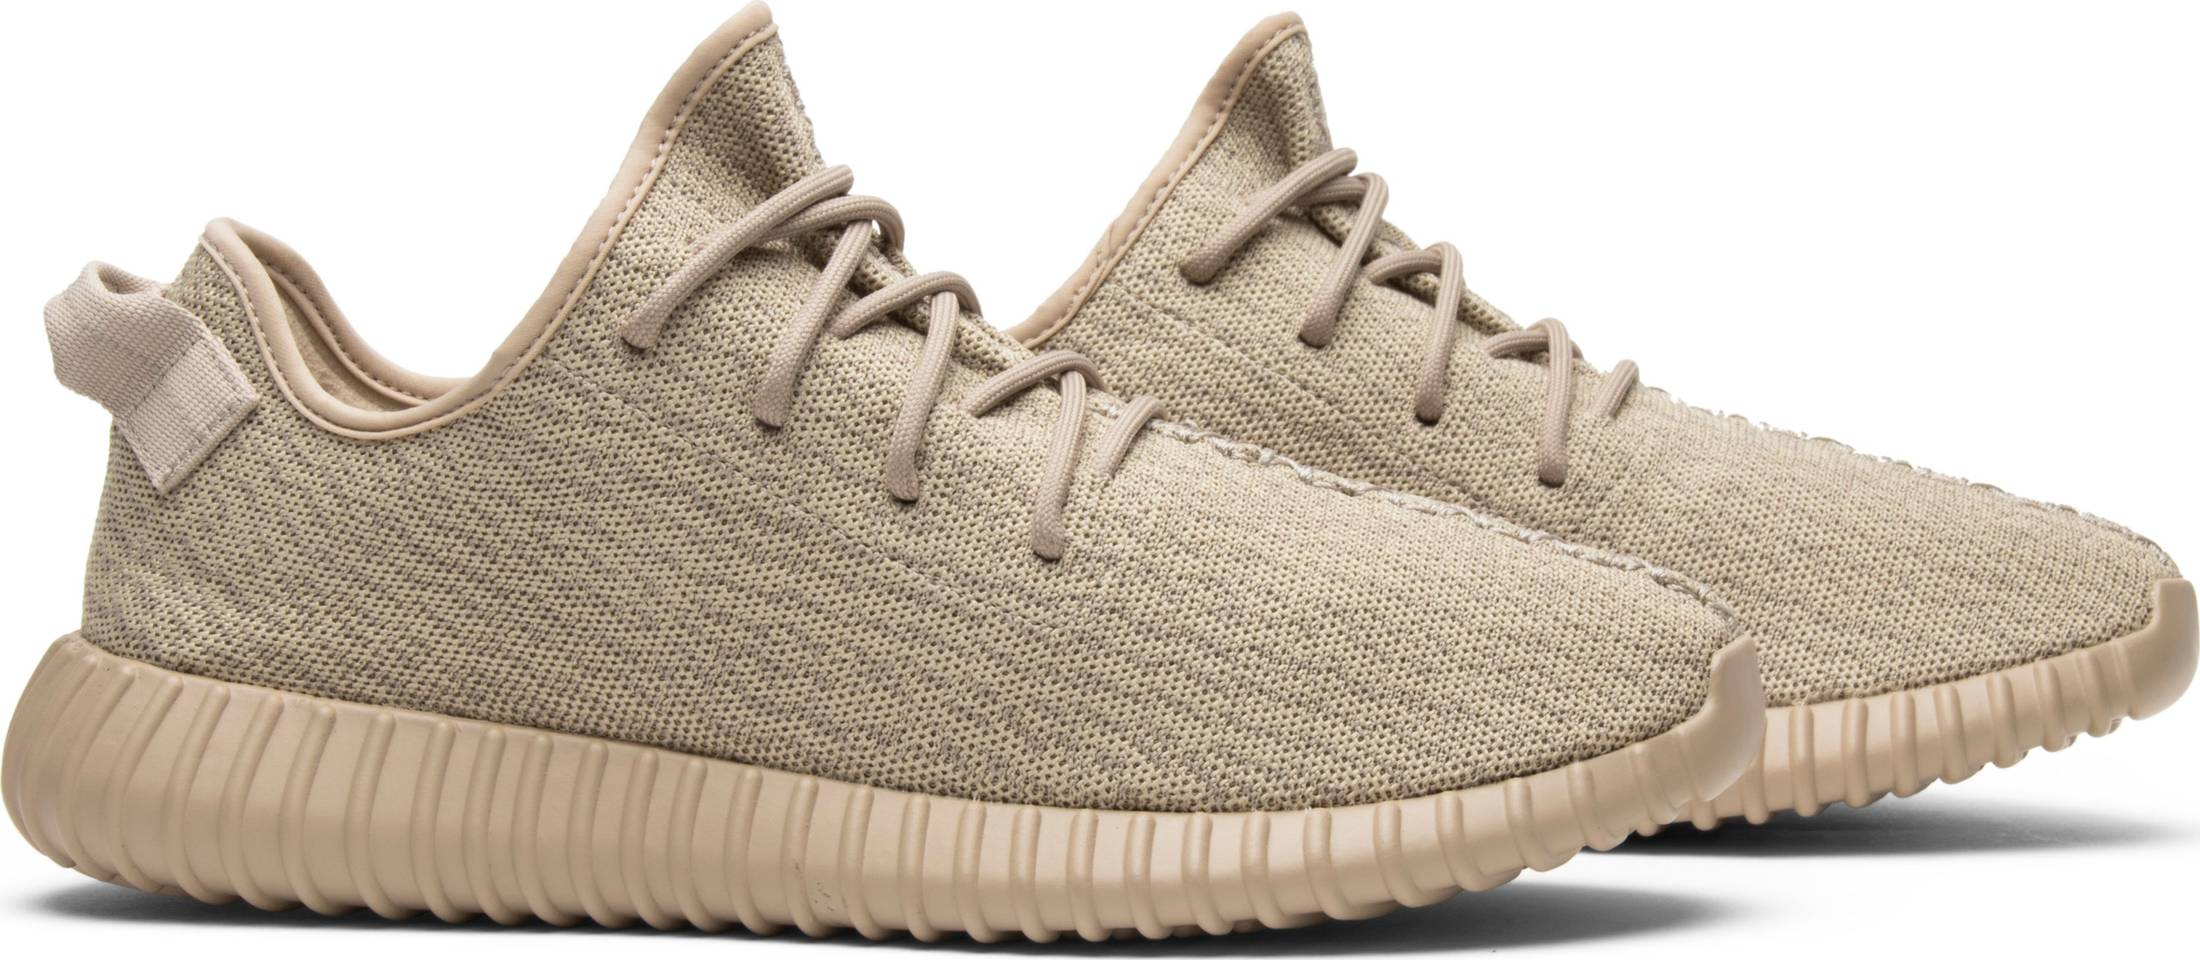 4c61f52e7be32 adidas Yeezy Boost 350